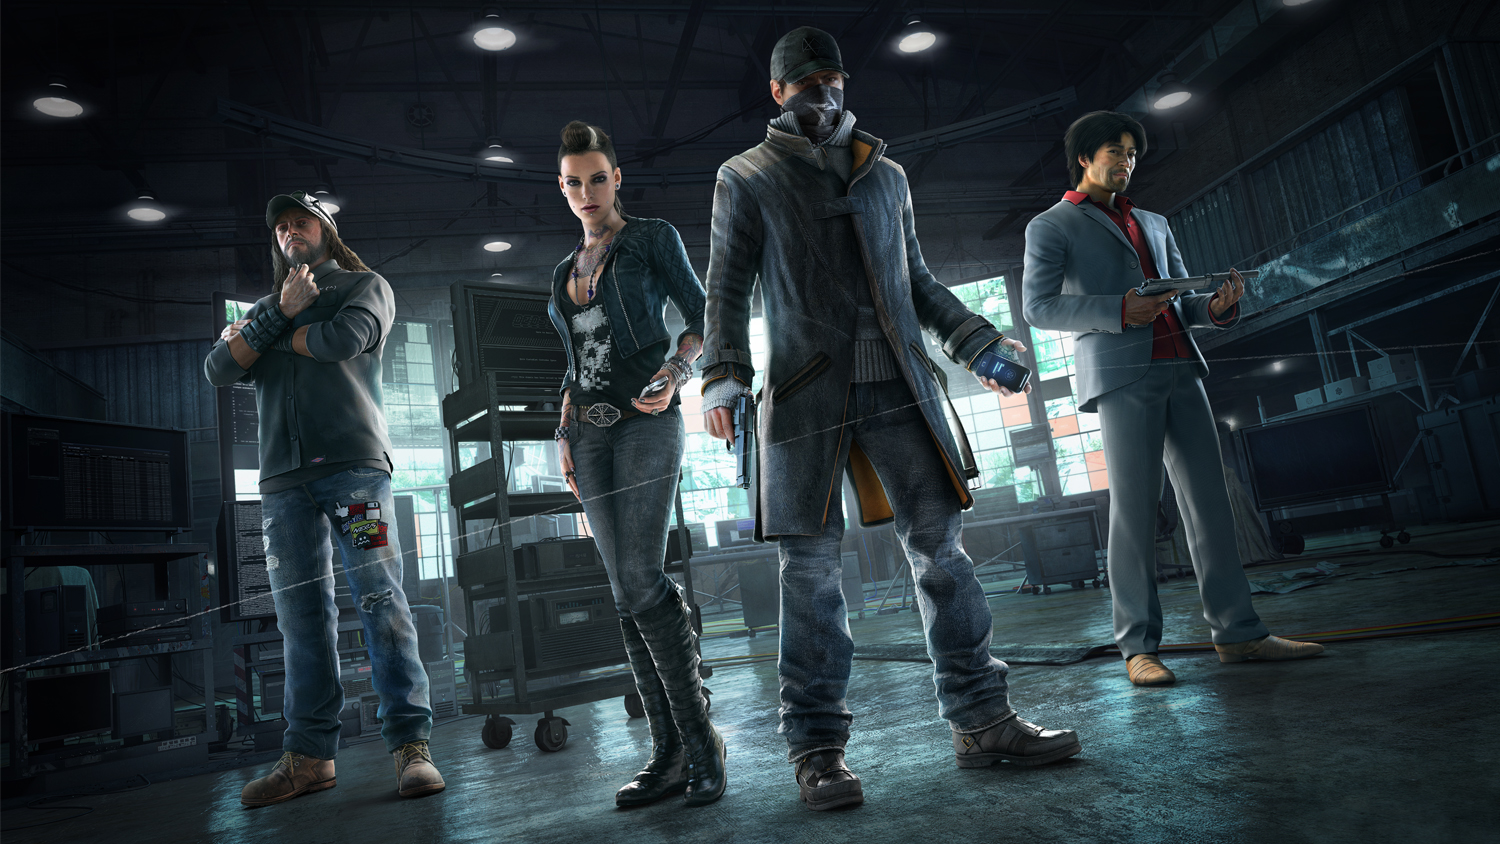 Game Watch Dogs Trailer